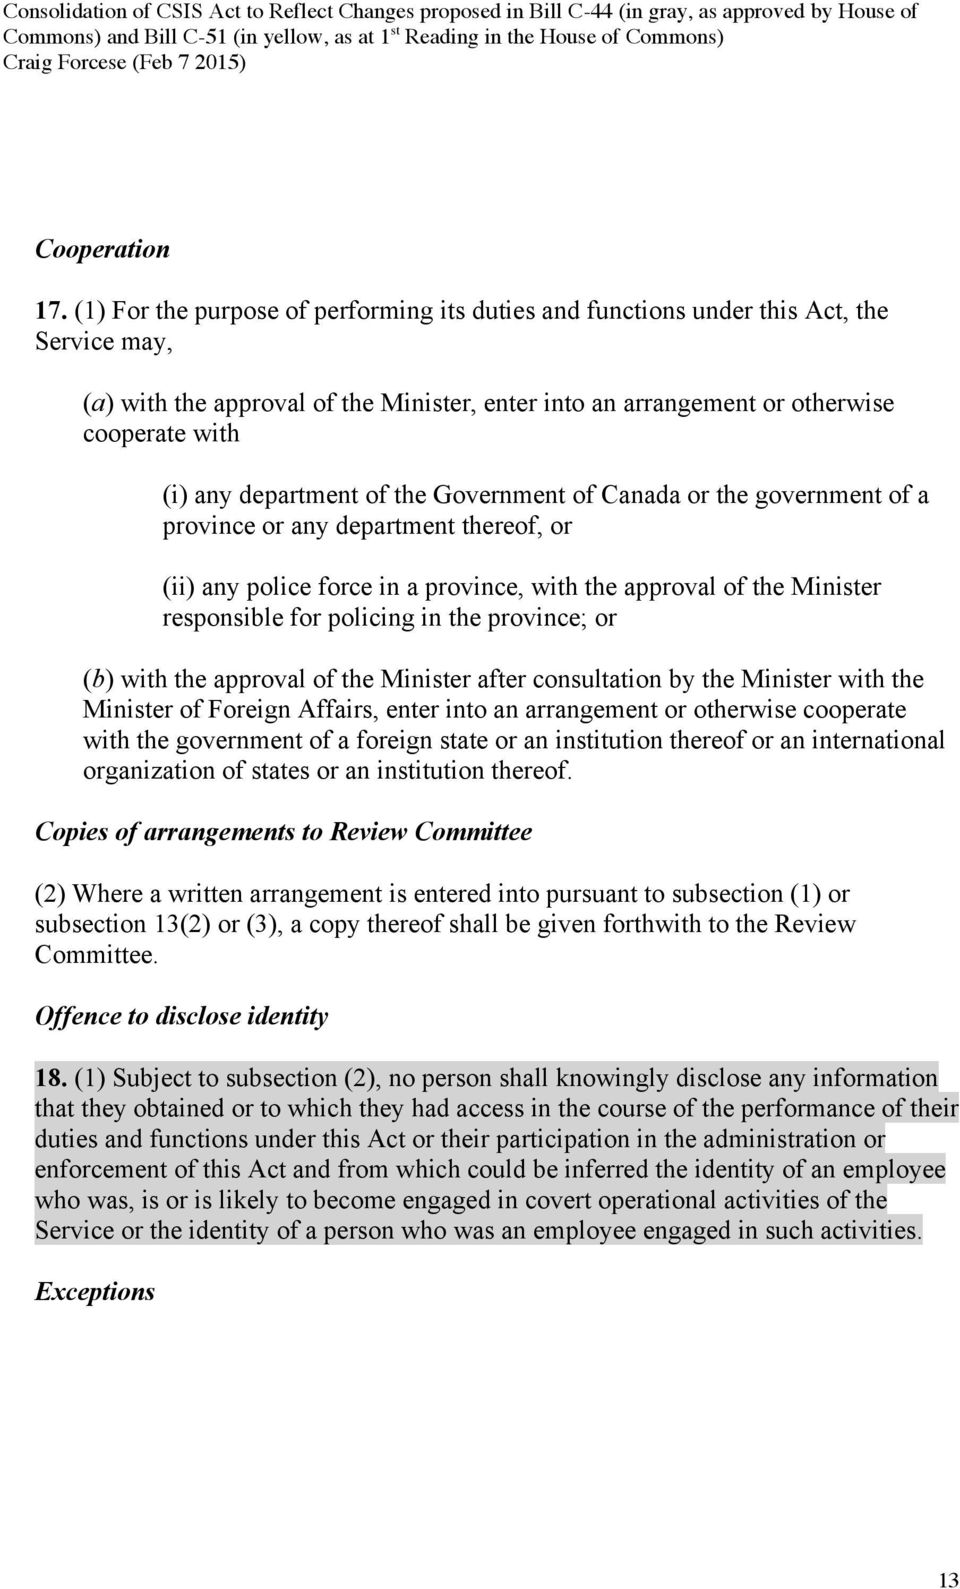 department of the Government of Canada or the government of a province or any department thereof, or (ii) any police force in a province, with the approval of the Minister responsible for policing in